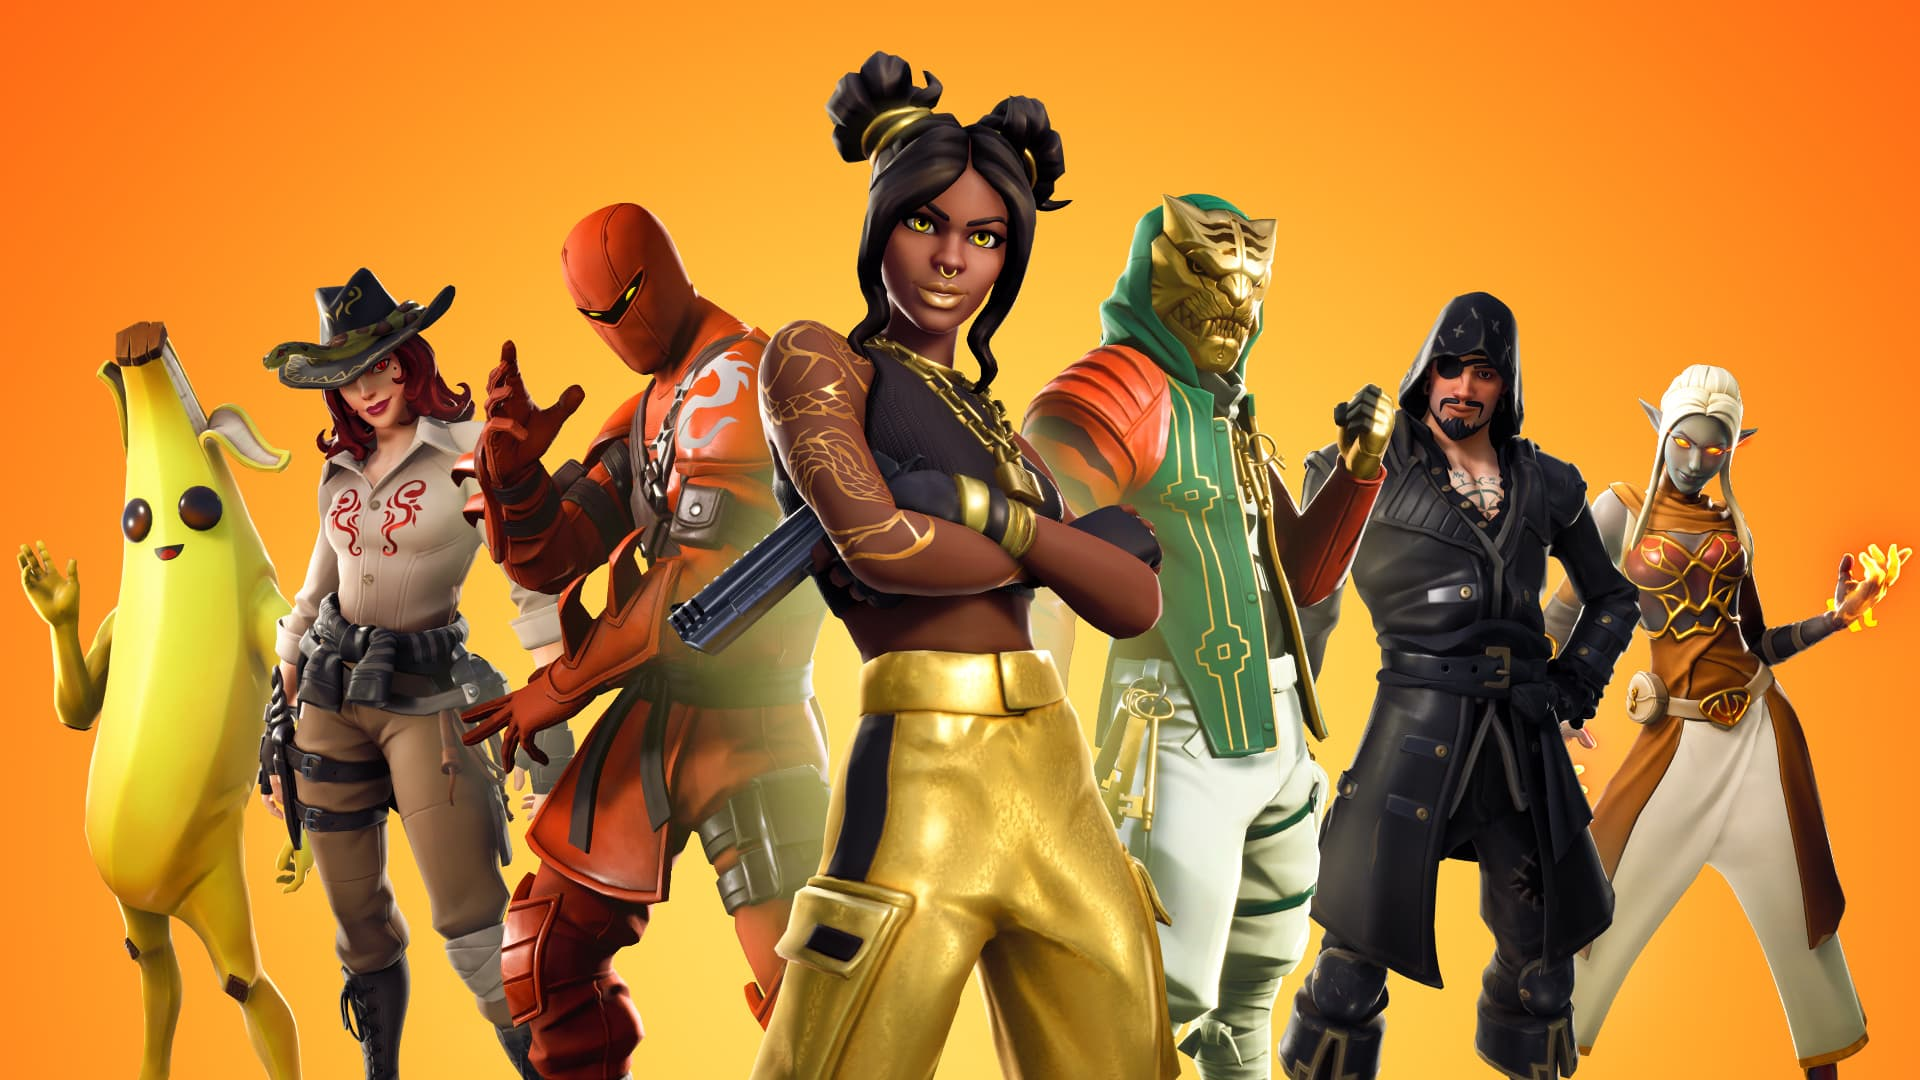 Amazing Fortnite Season 8 Battle Pass Wallpapers and backgrounds